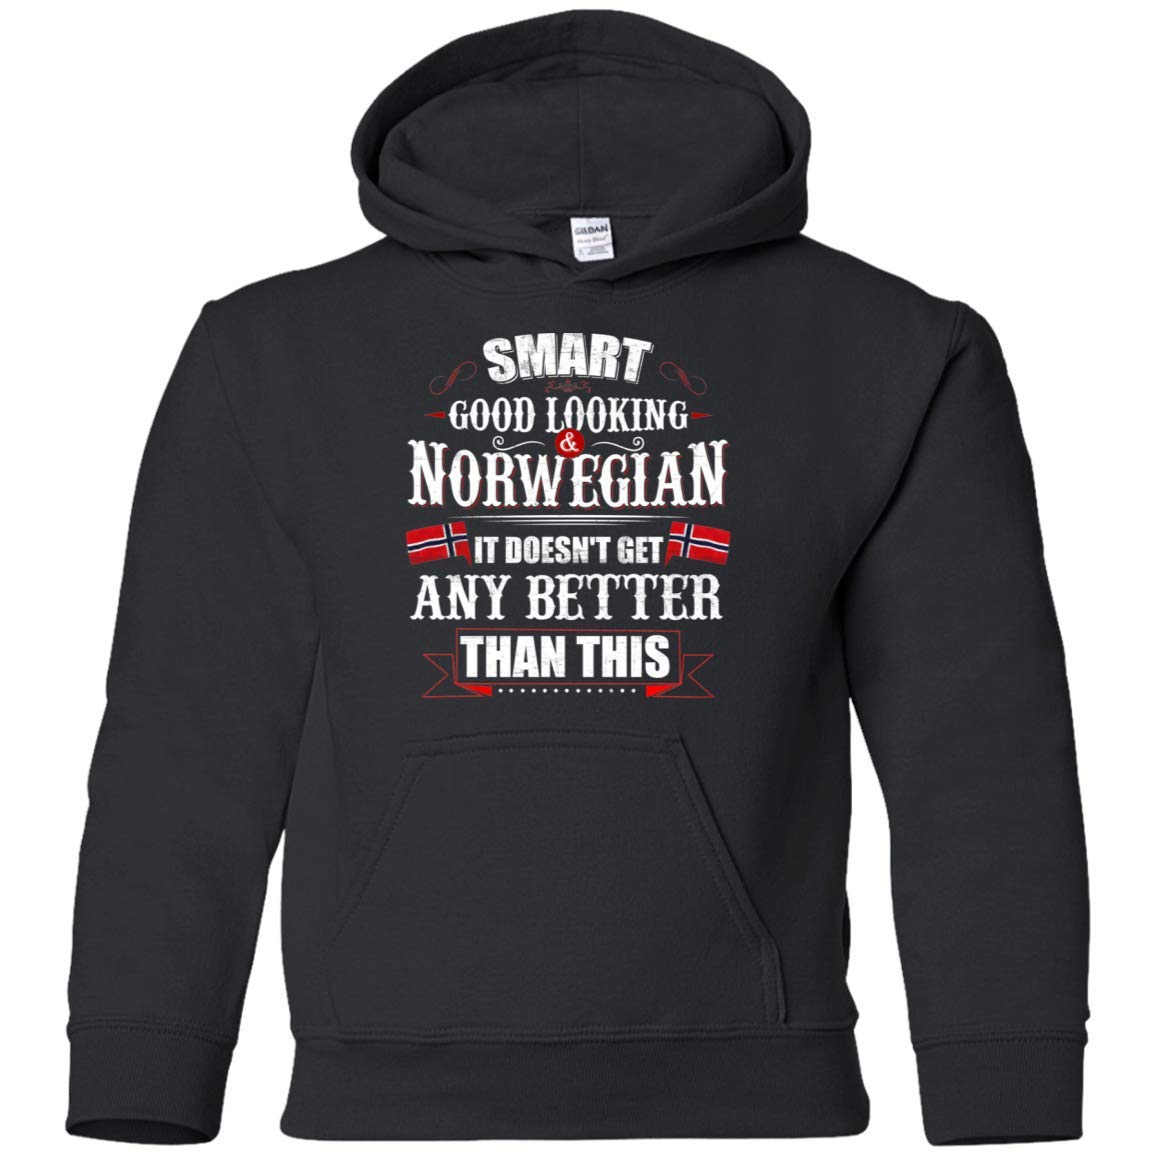 Shirt White Little Girls Smart Good Looking and Norwegian:G185B Gildan Youth Pullover Hoodie